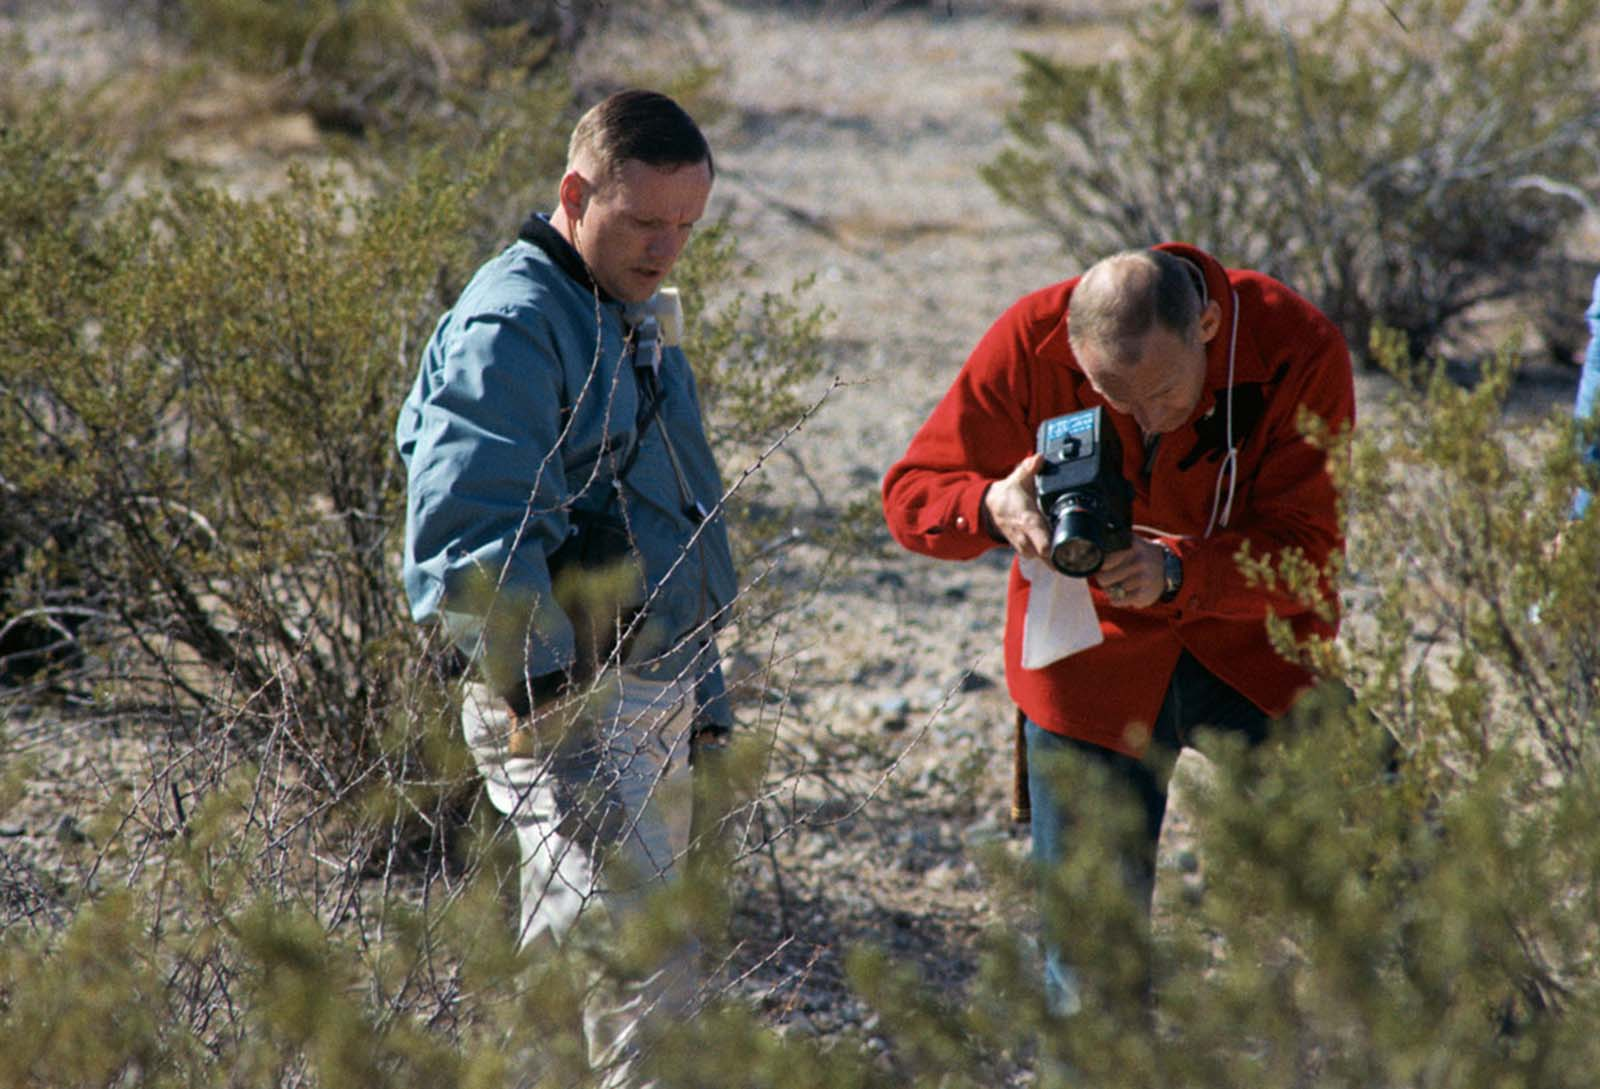 The astronauts Neil Armstrong and Buzz Aldrin take part in a geology field trip in Sierra Blanca, Texas.